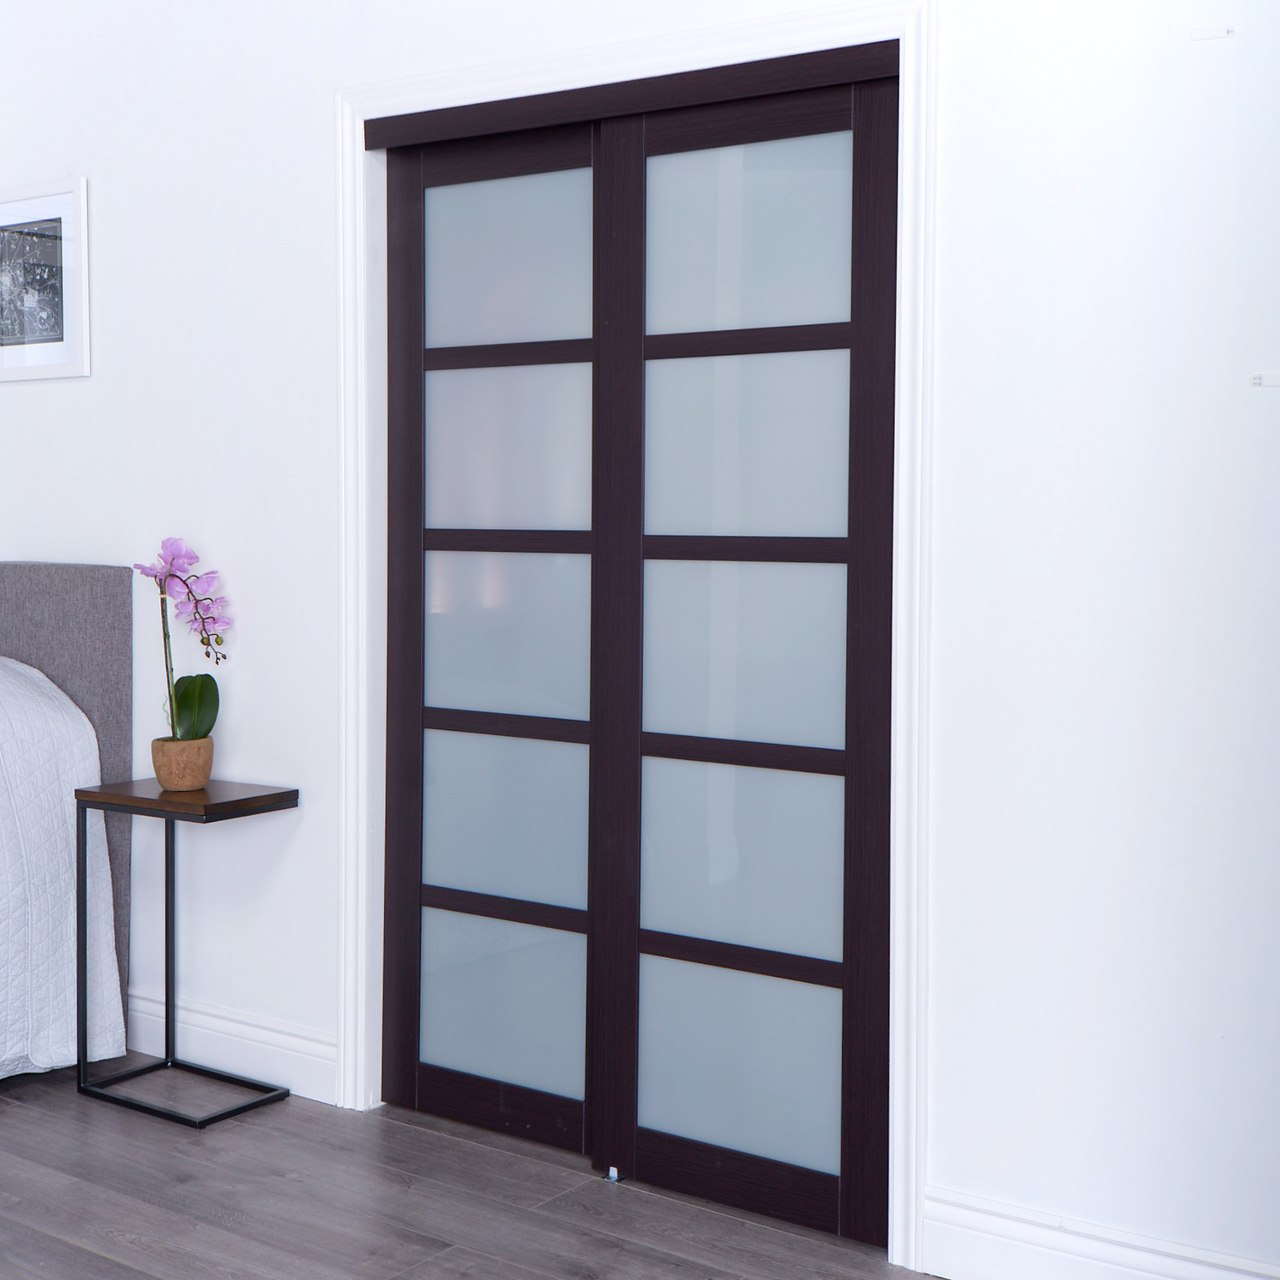 Euro Closet And Room Divider Door 5 Frosted Glass Sliding